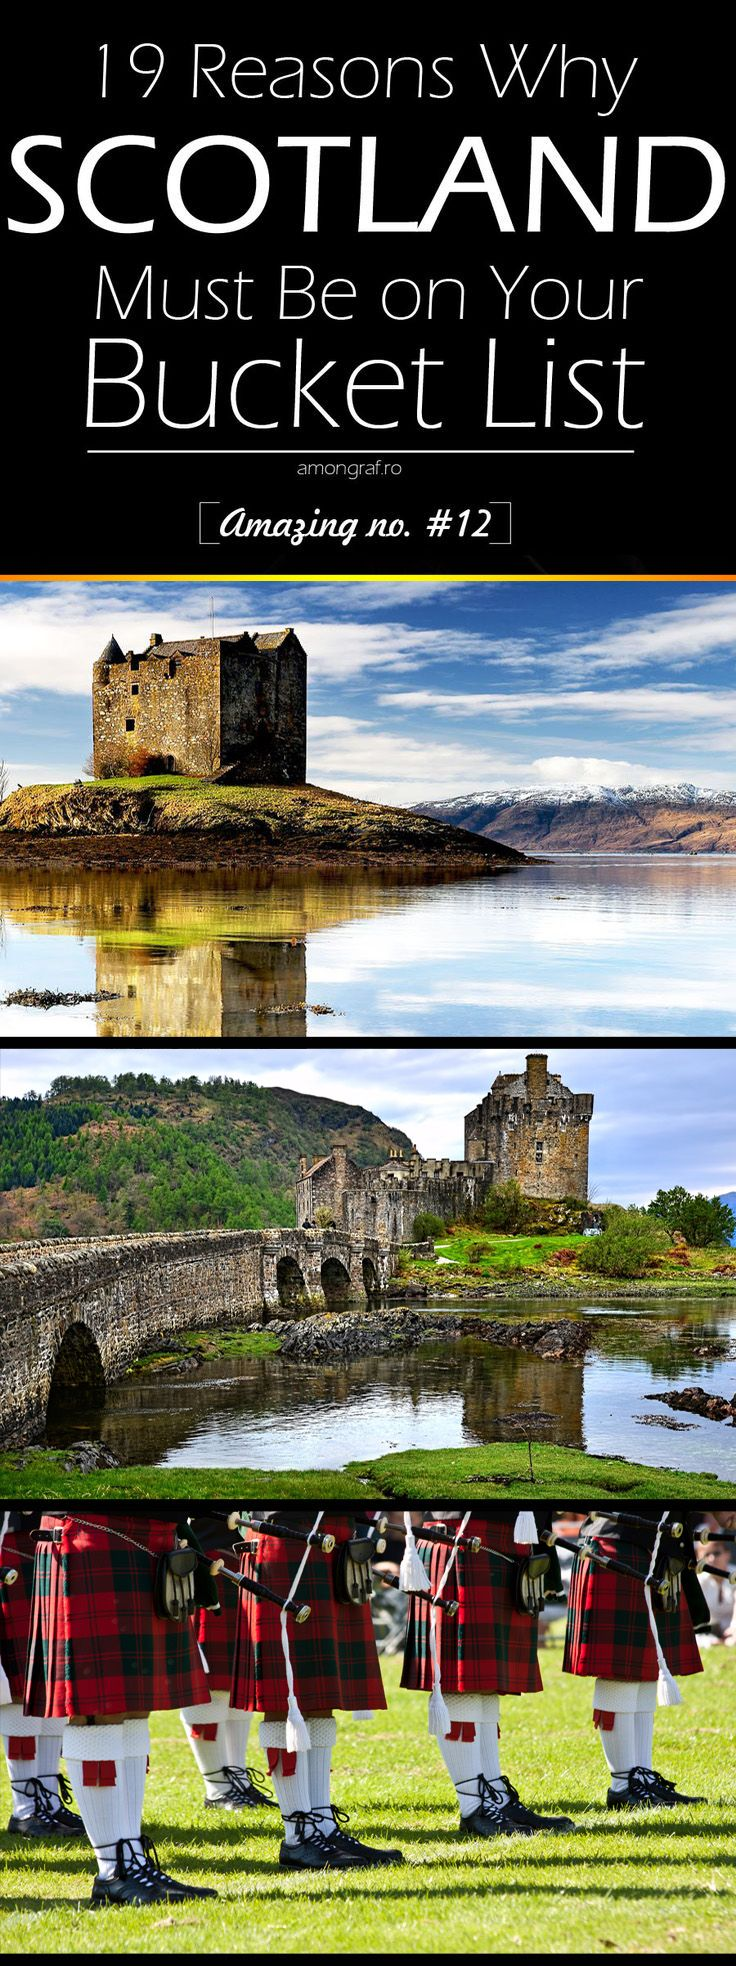 19 Reasons Why Scotland Must Be on Your Bucket List. Amazing no. #12  #Scotland